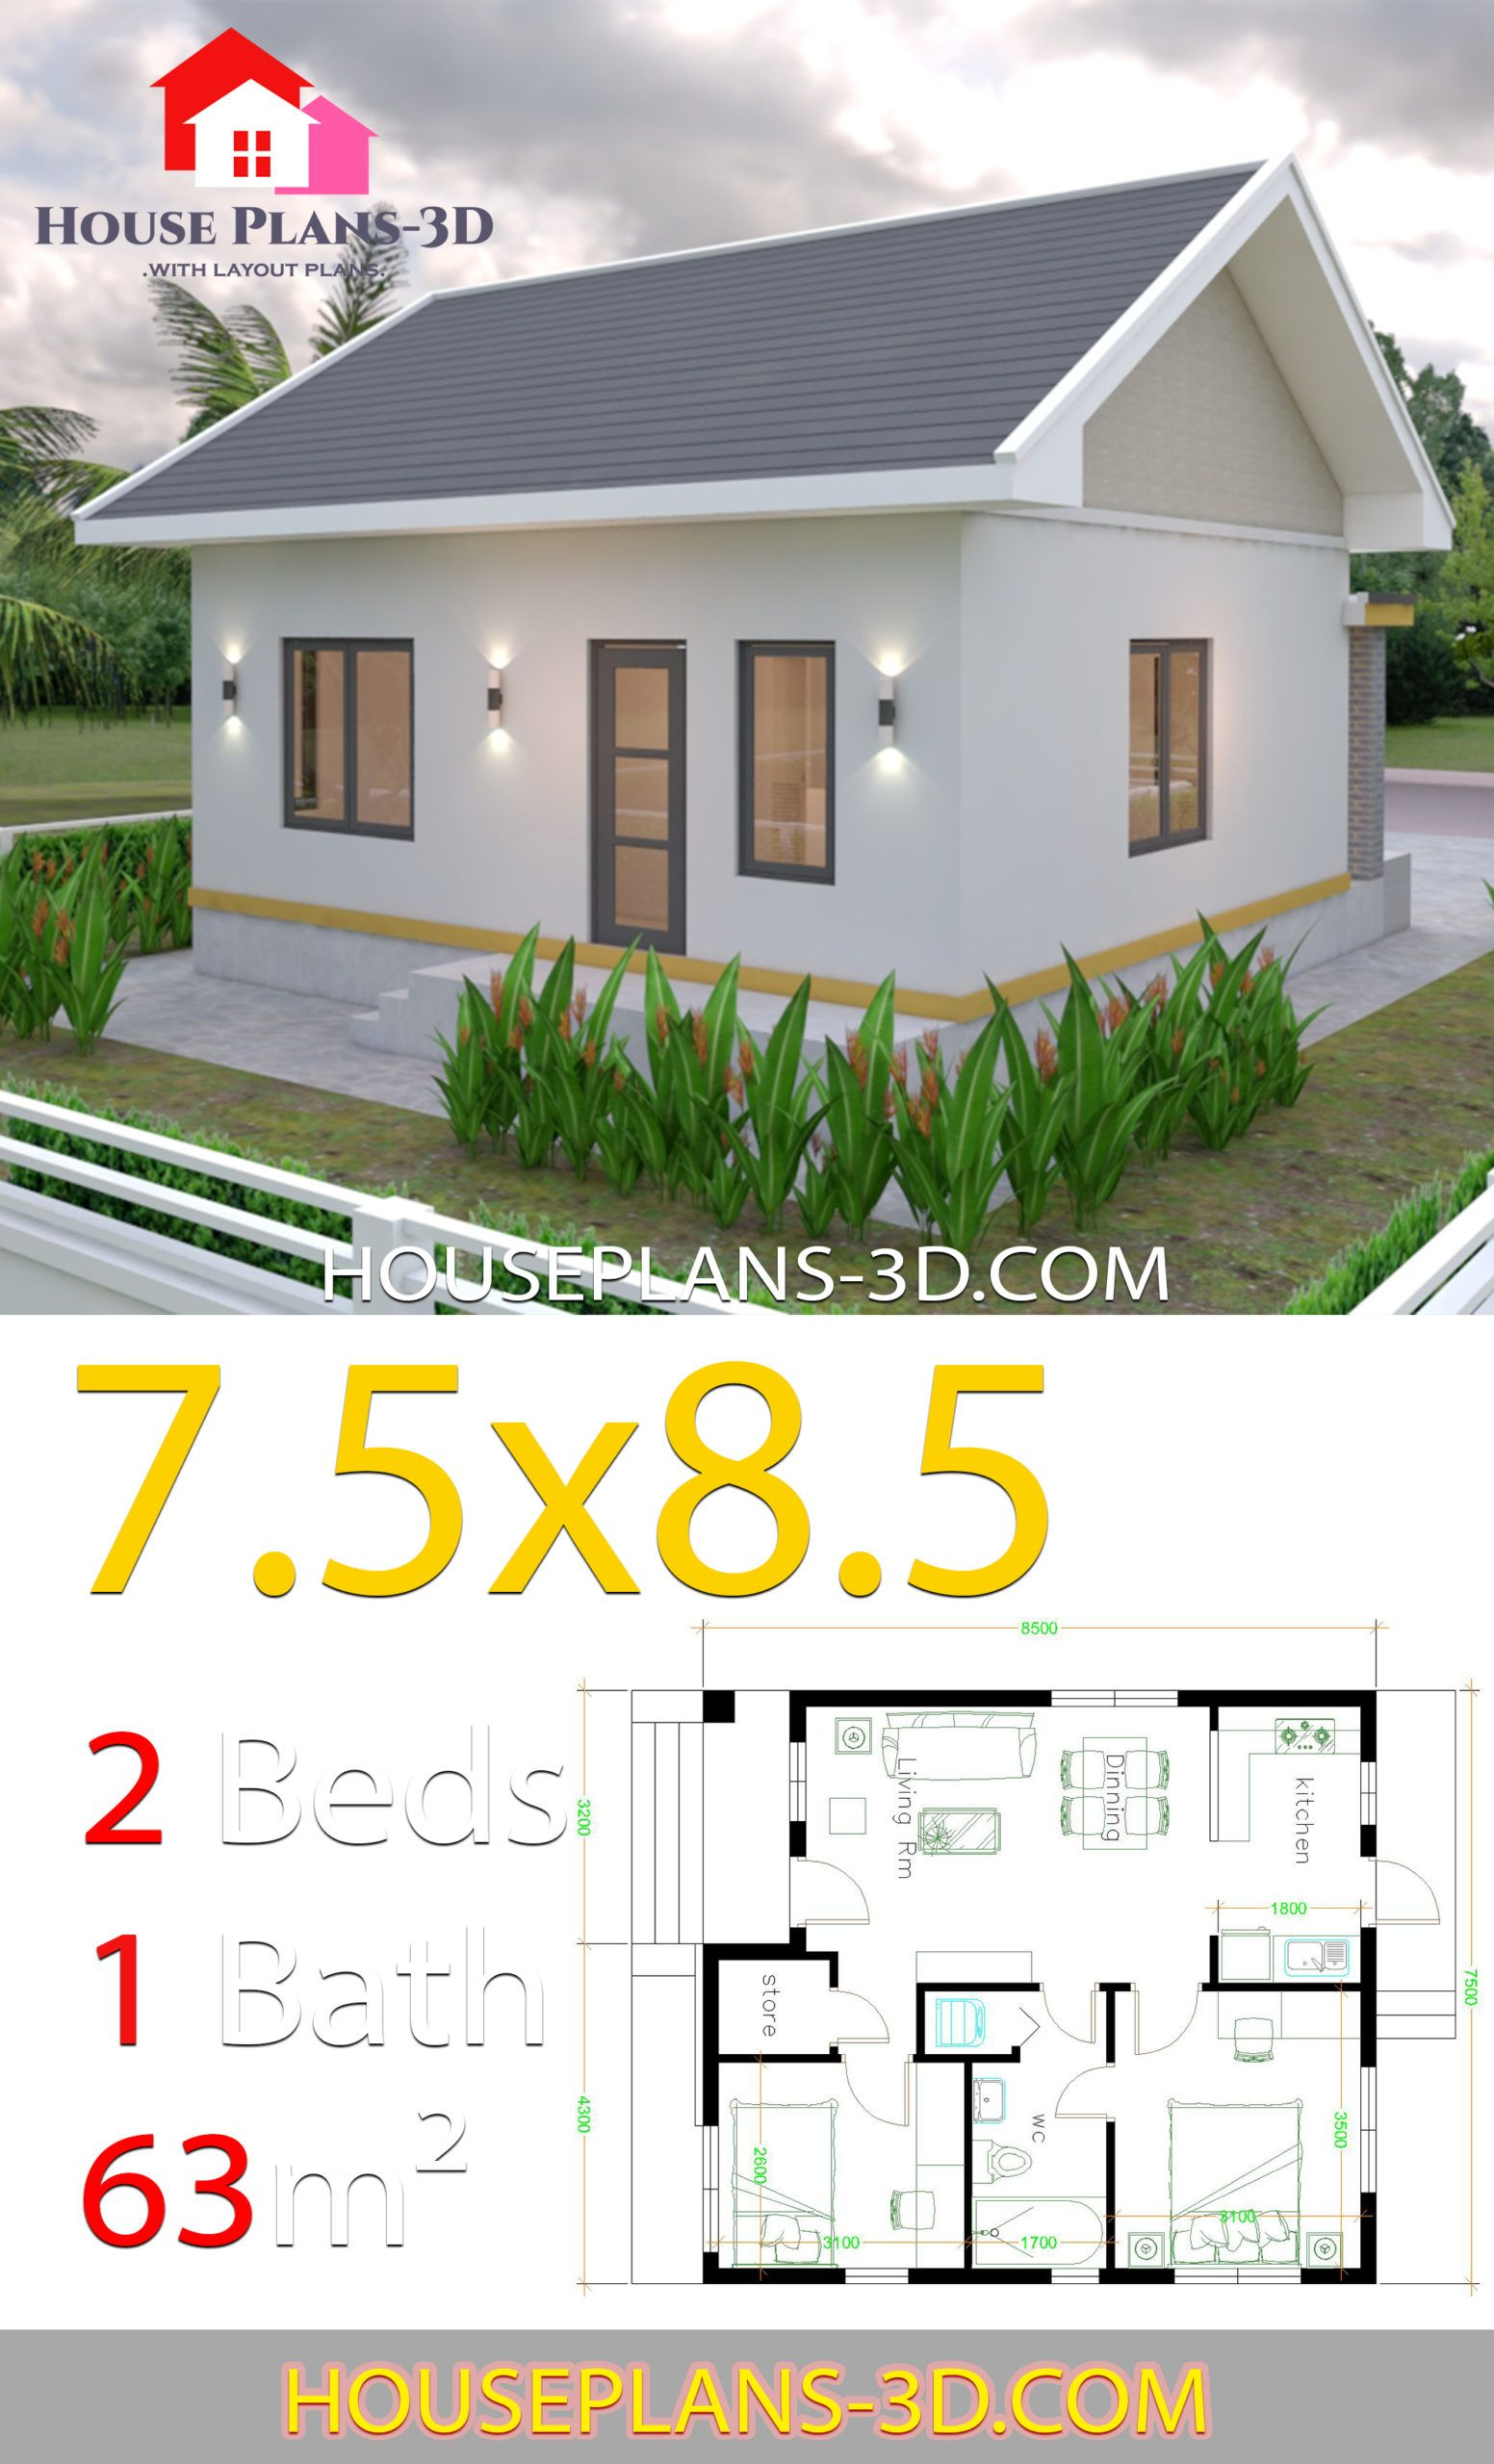 House Plans 7 5x8 5m With 2 Bedrooms Gable Roof House Plans 3d Gable Roof House Cottage House Exterior Small House Exteriors